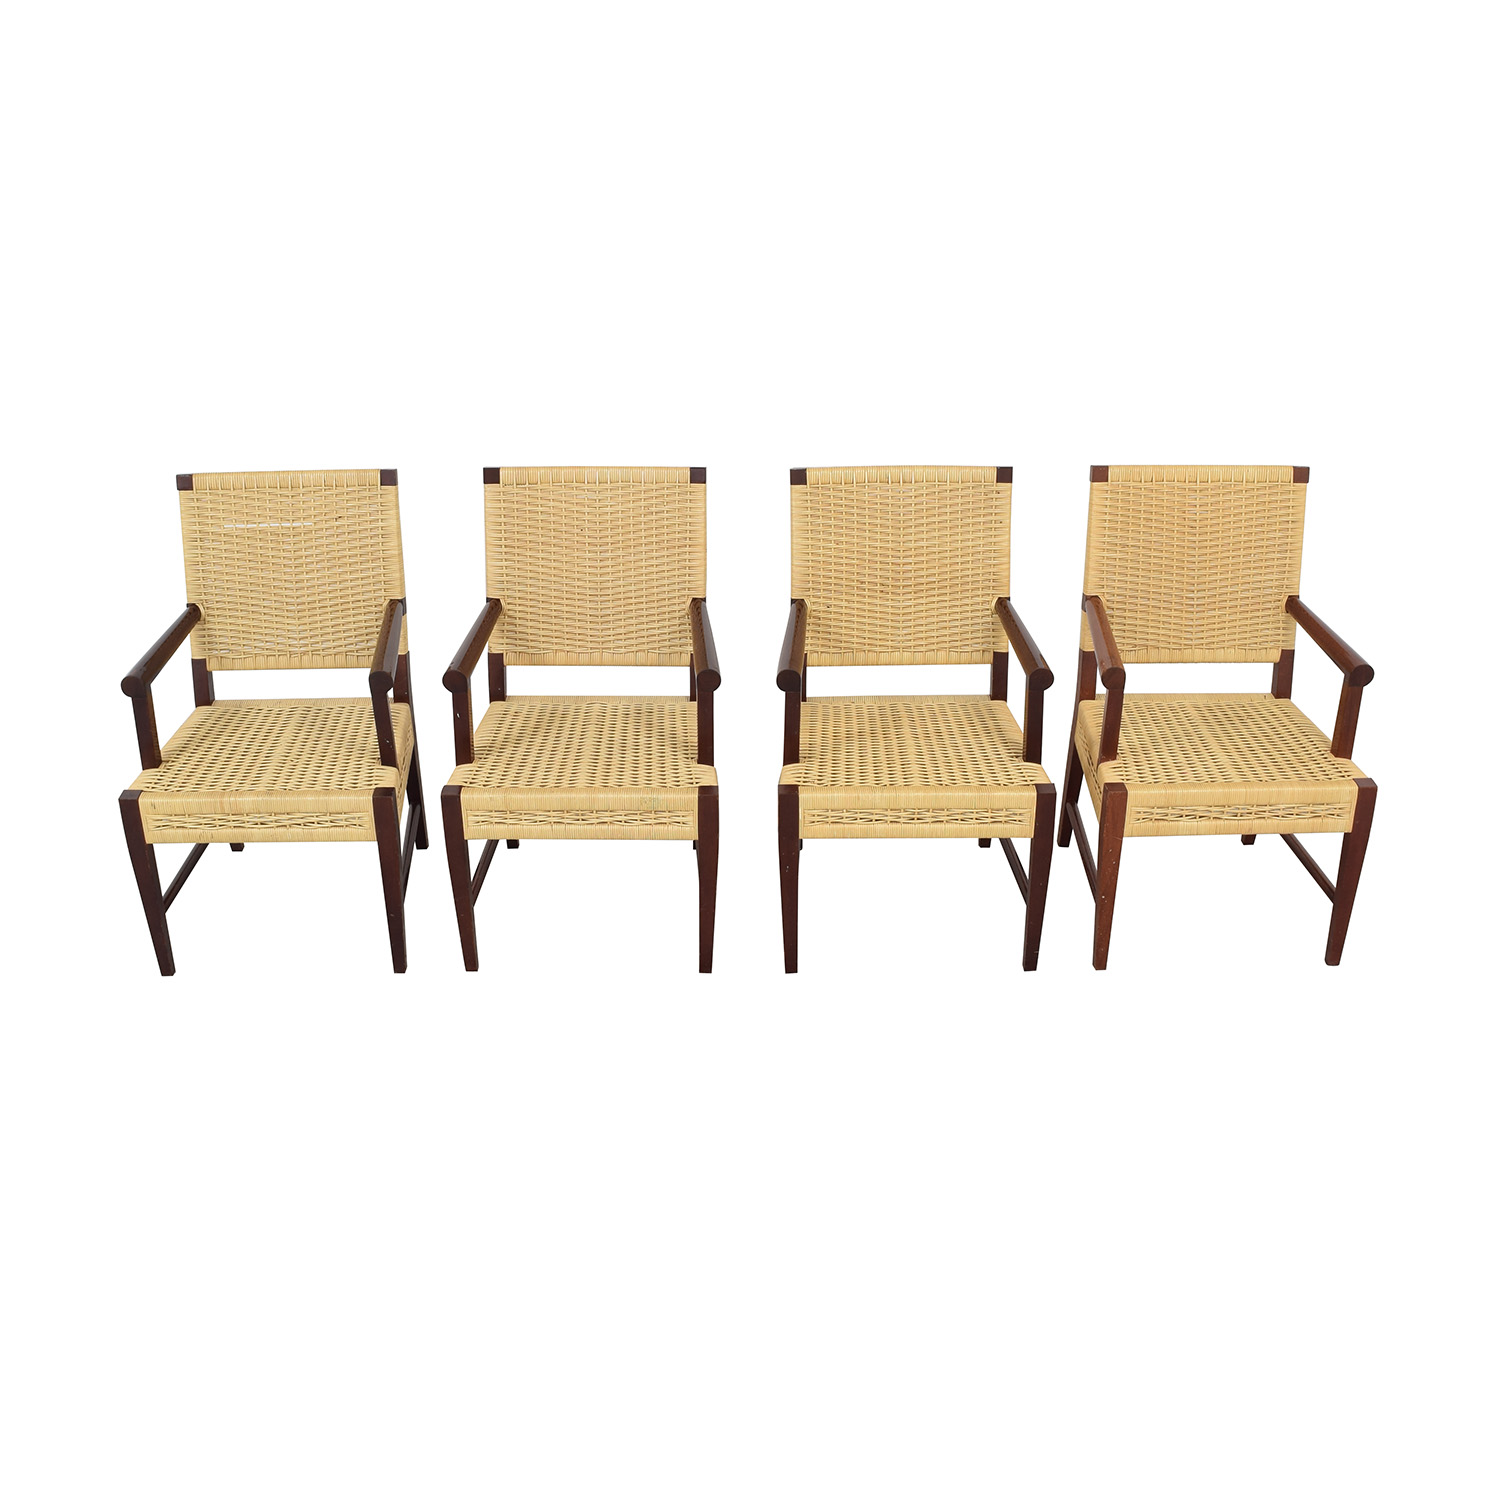 Donghia Donghia Dining Chairs in Merbau Wood with Raffia Weaving second hand